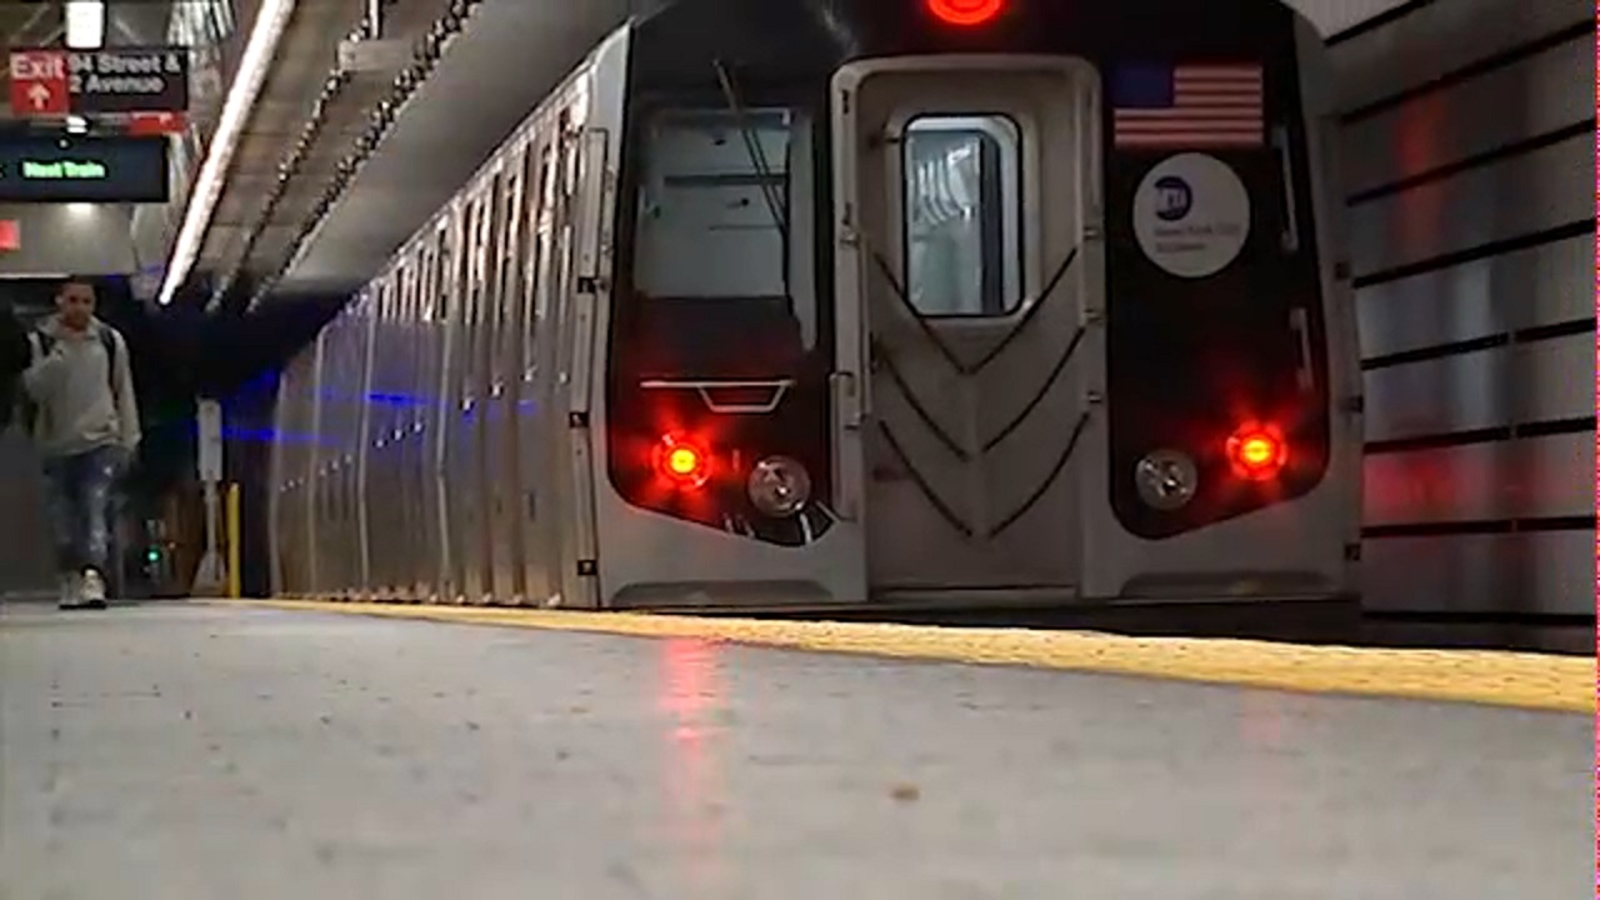 Lawmakers pushing to extend Q line into East Harlem